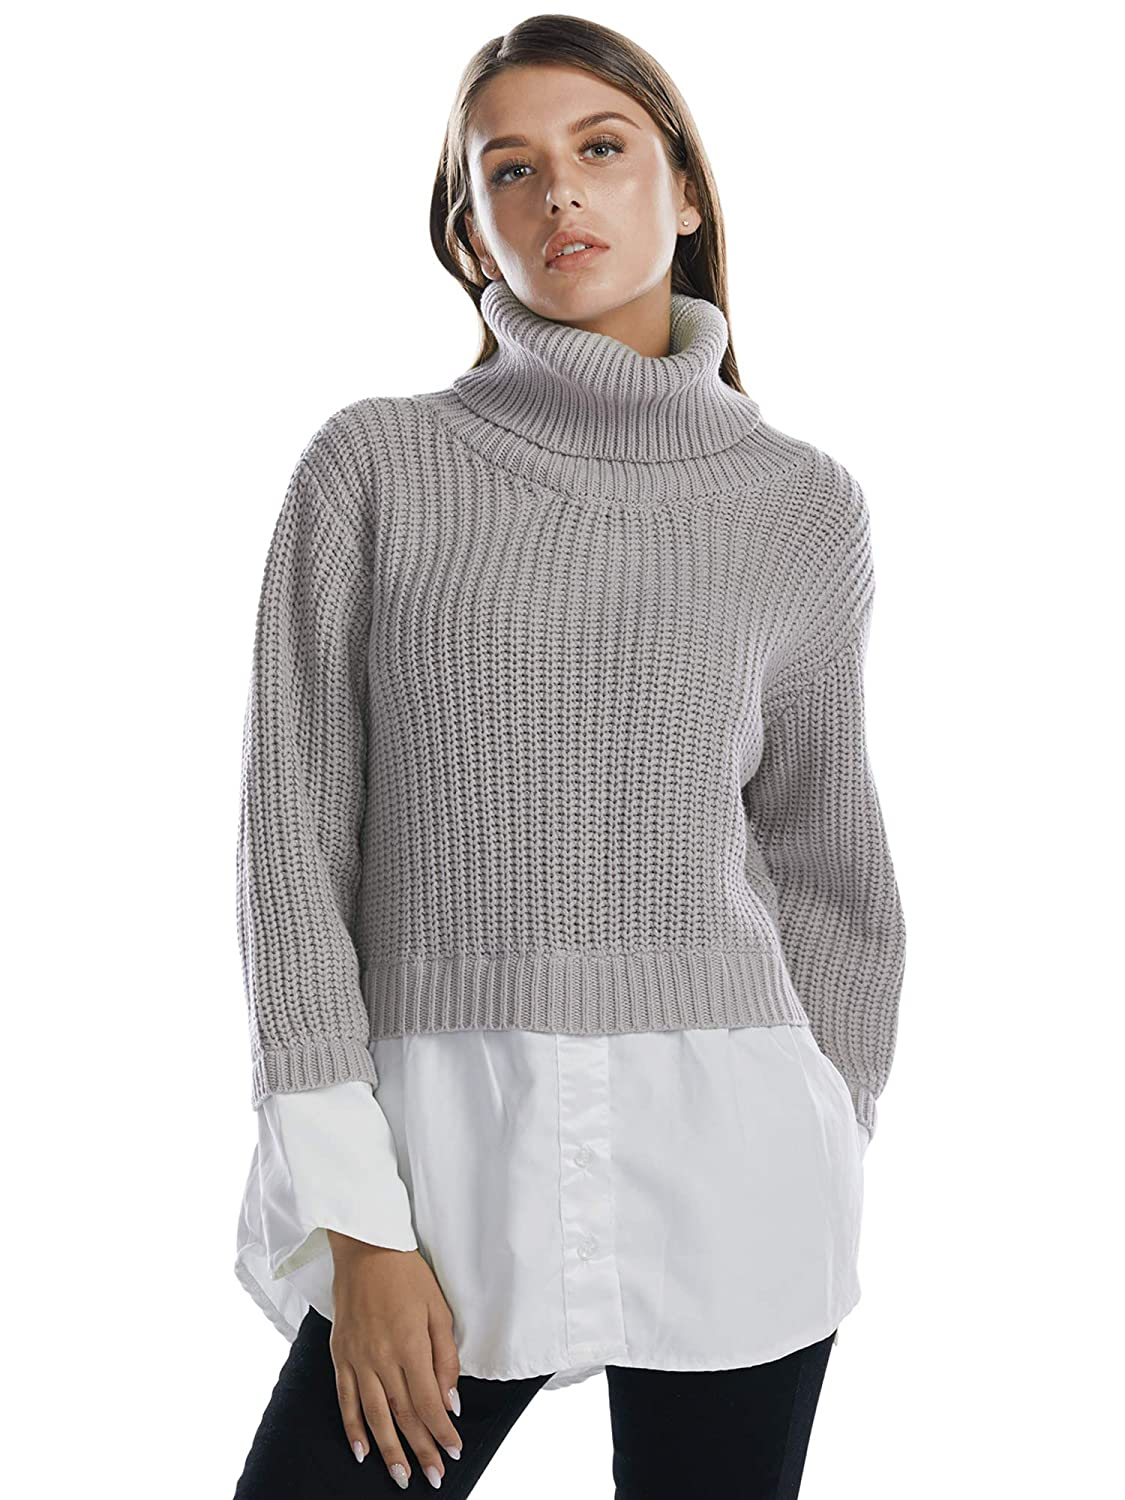 Grey BARGOOS Women Chunky Turtleneck Sweater Dress 2 in 1 Contrast Hem color Long Sleeves Office Tunic Blouse Tops